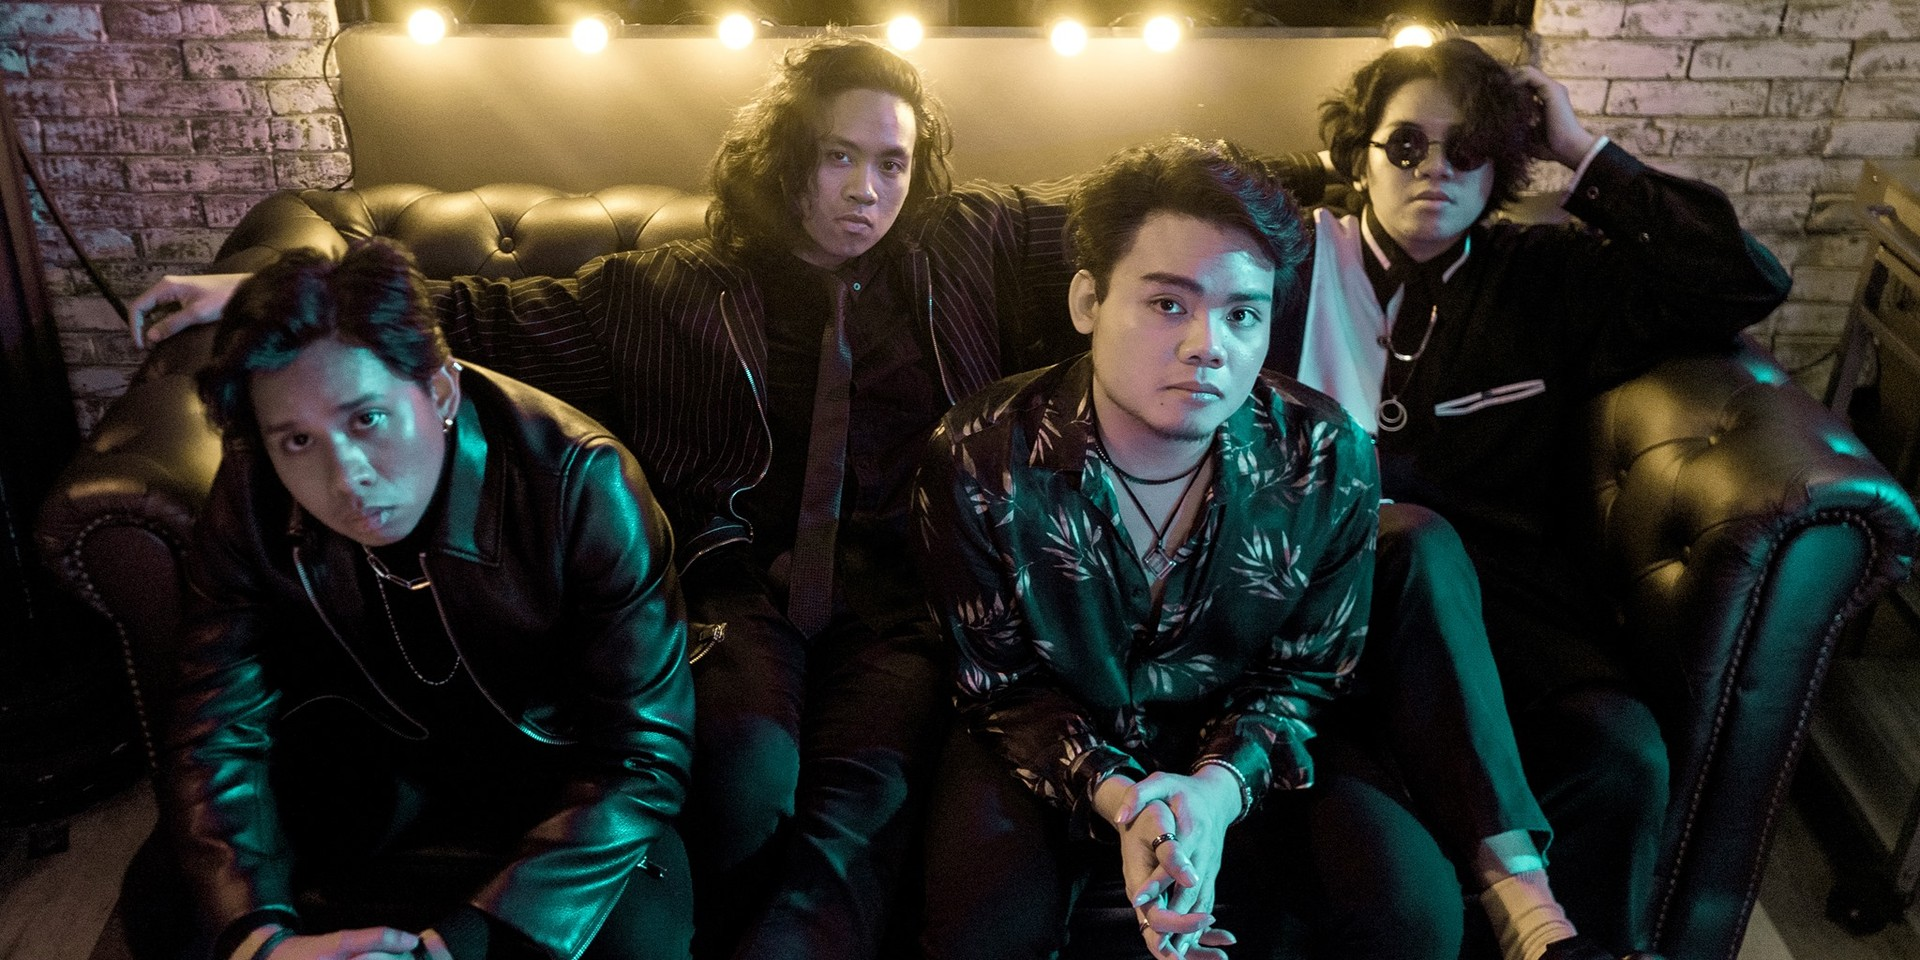 One Click Straight to hold Midyear Party with Manila Magic, Ena Mori, Tom Cat, and more